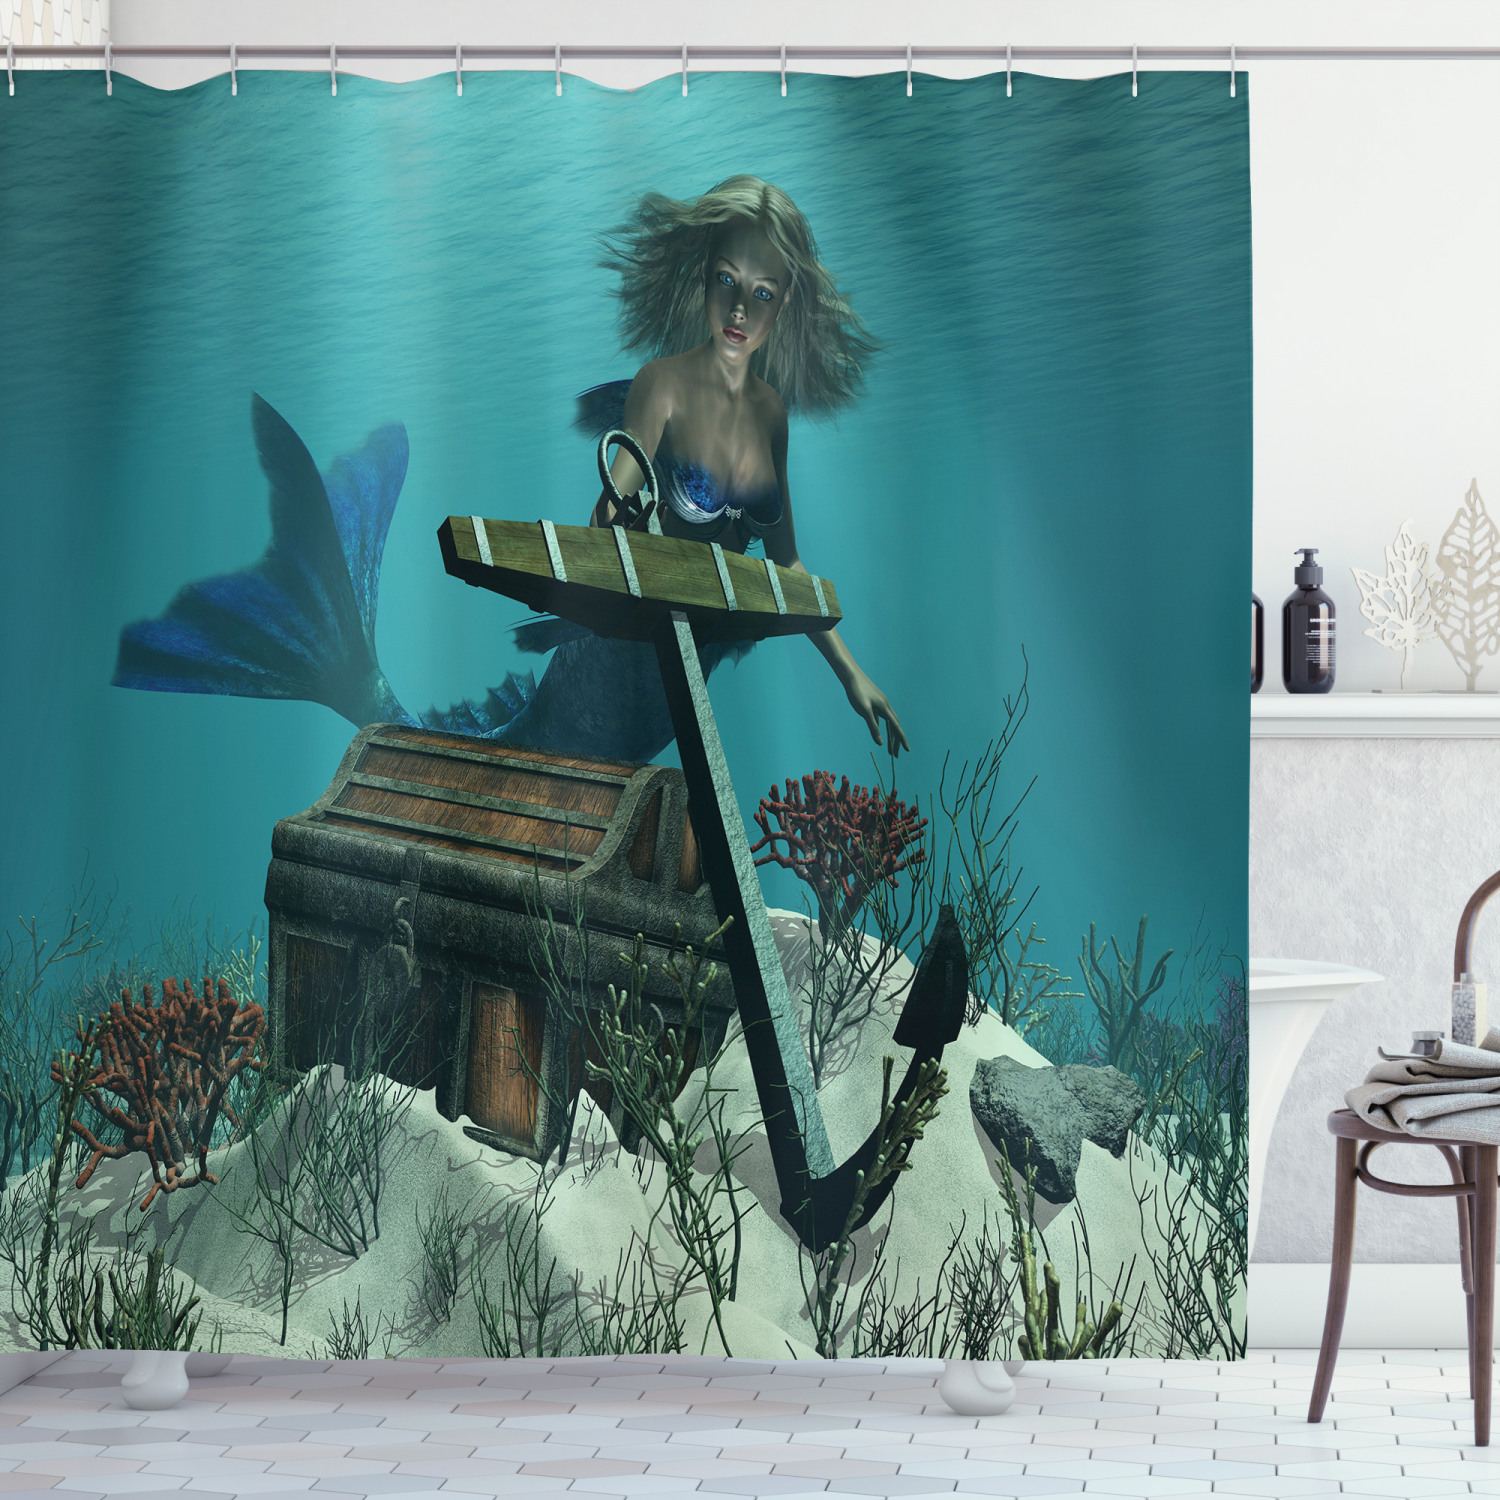 mermaid shower curtain mermaid in ocean sea discovering pirate s treasure chest mythical art print fabric bathroom set with hooks azure brown